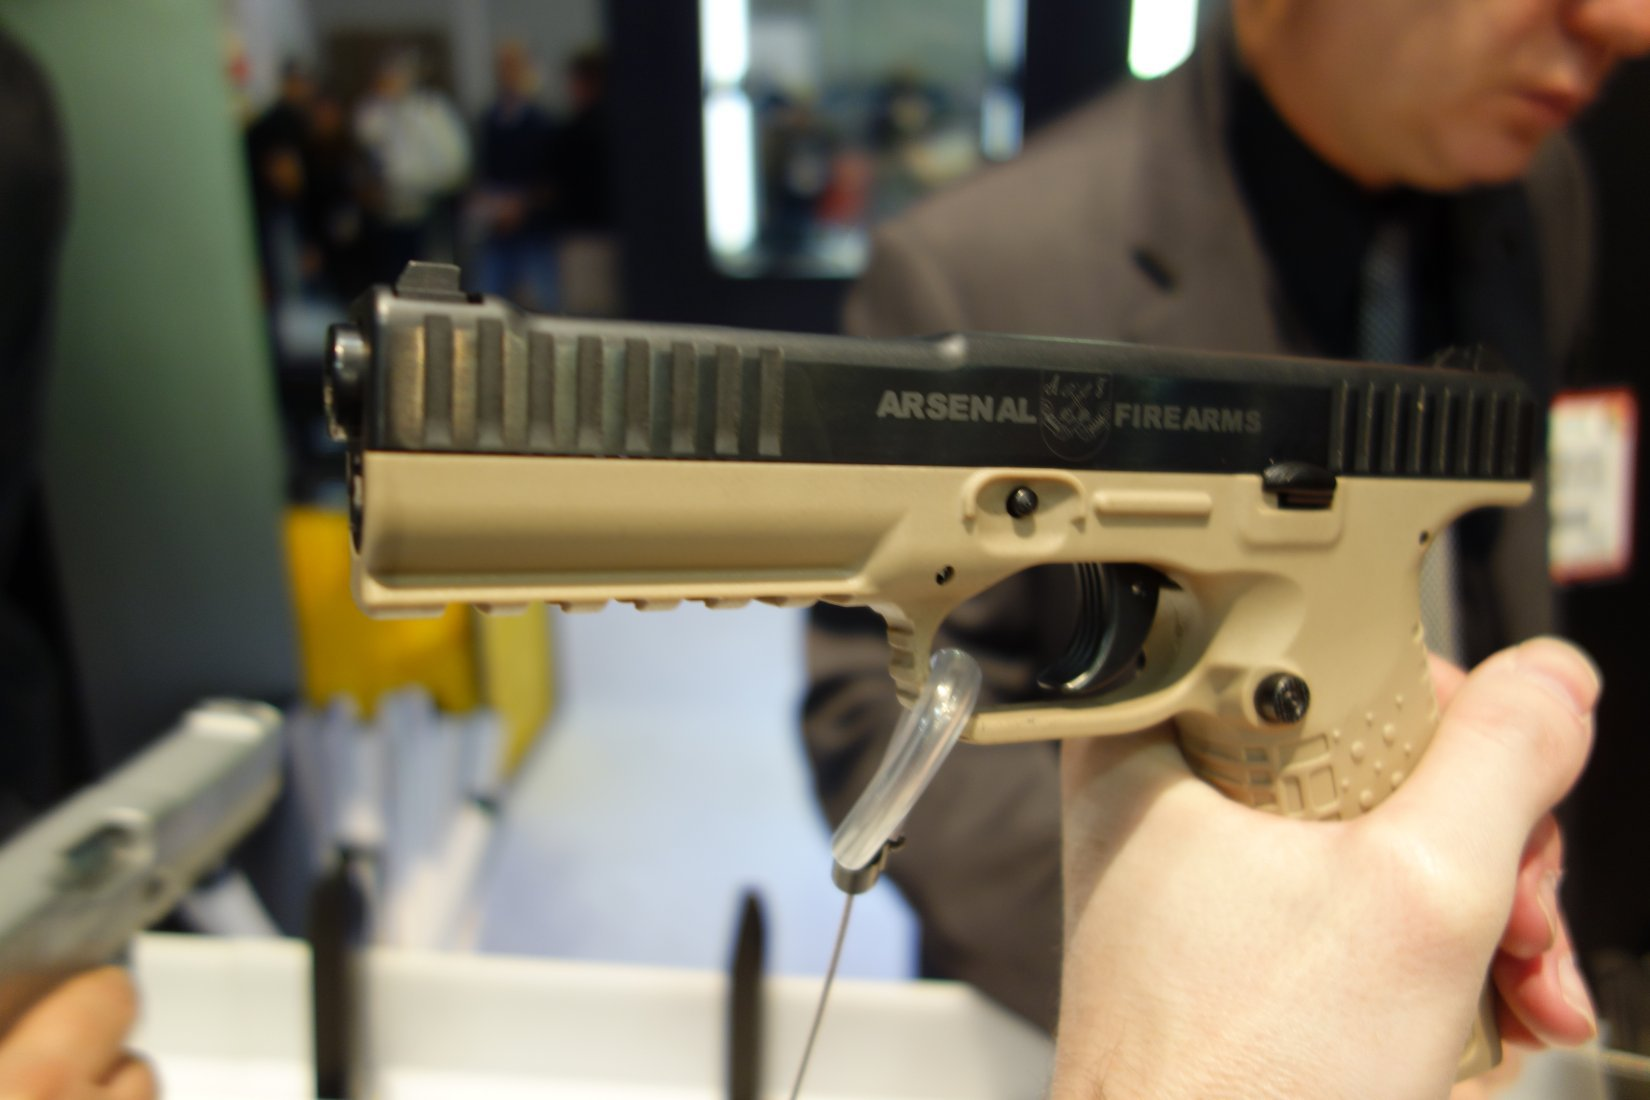 Arsenal Firearms Strike One Pistol System SHOT Show 2013 David Crane DefenseReview.com DR 1 Arsenal Firearms Strike One Pistol System Internal Parts and Operating Mechanism Shown and Explained at SHOT Show 2013 (Video!)